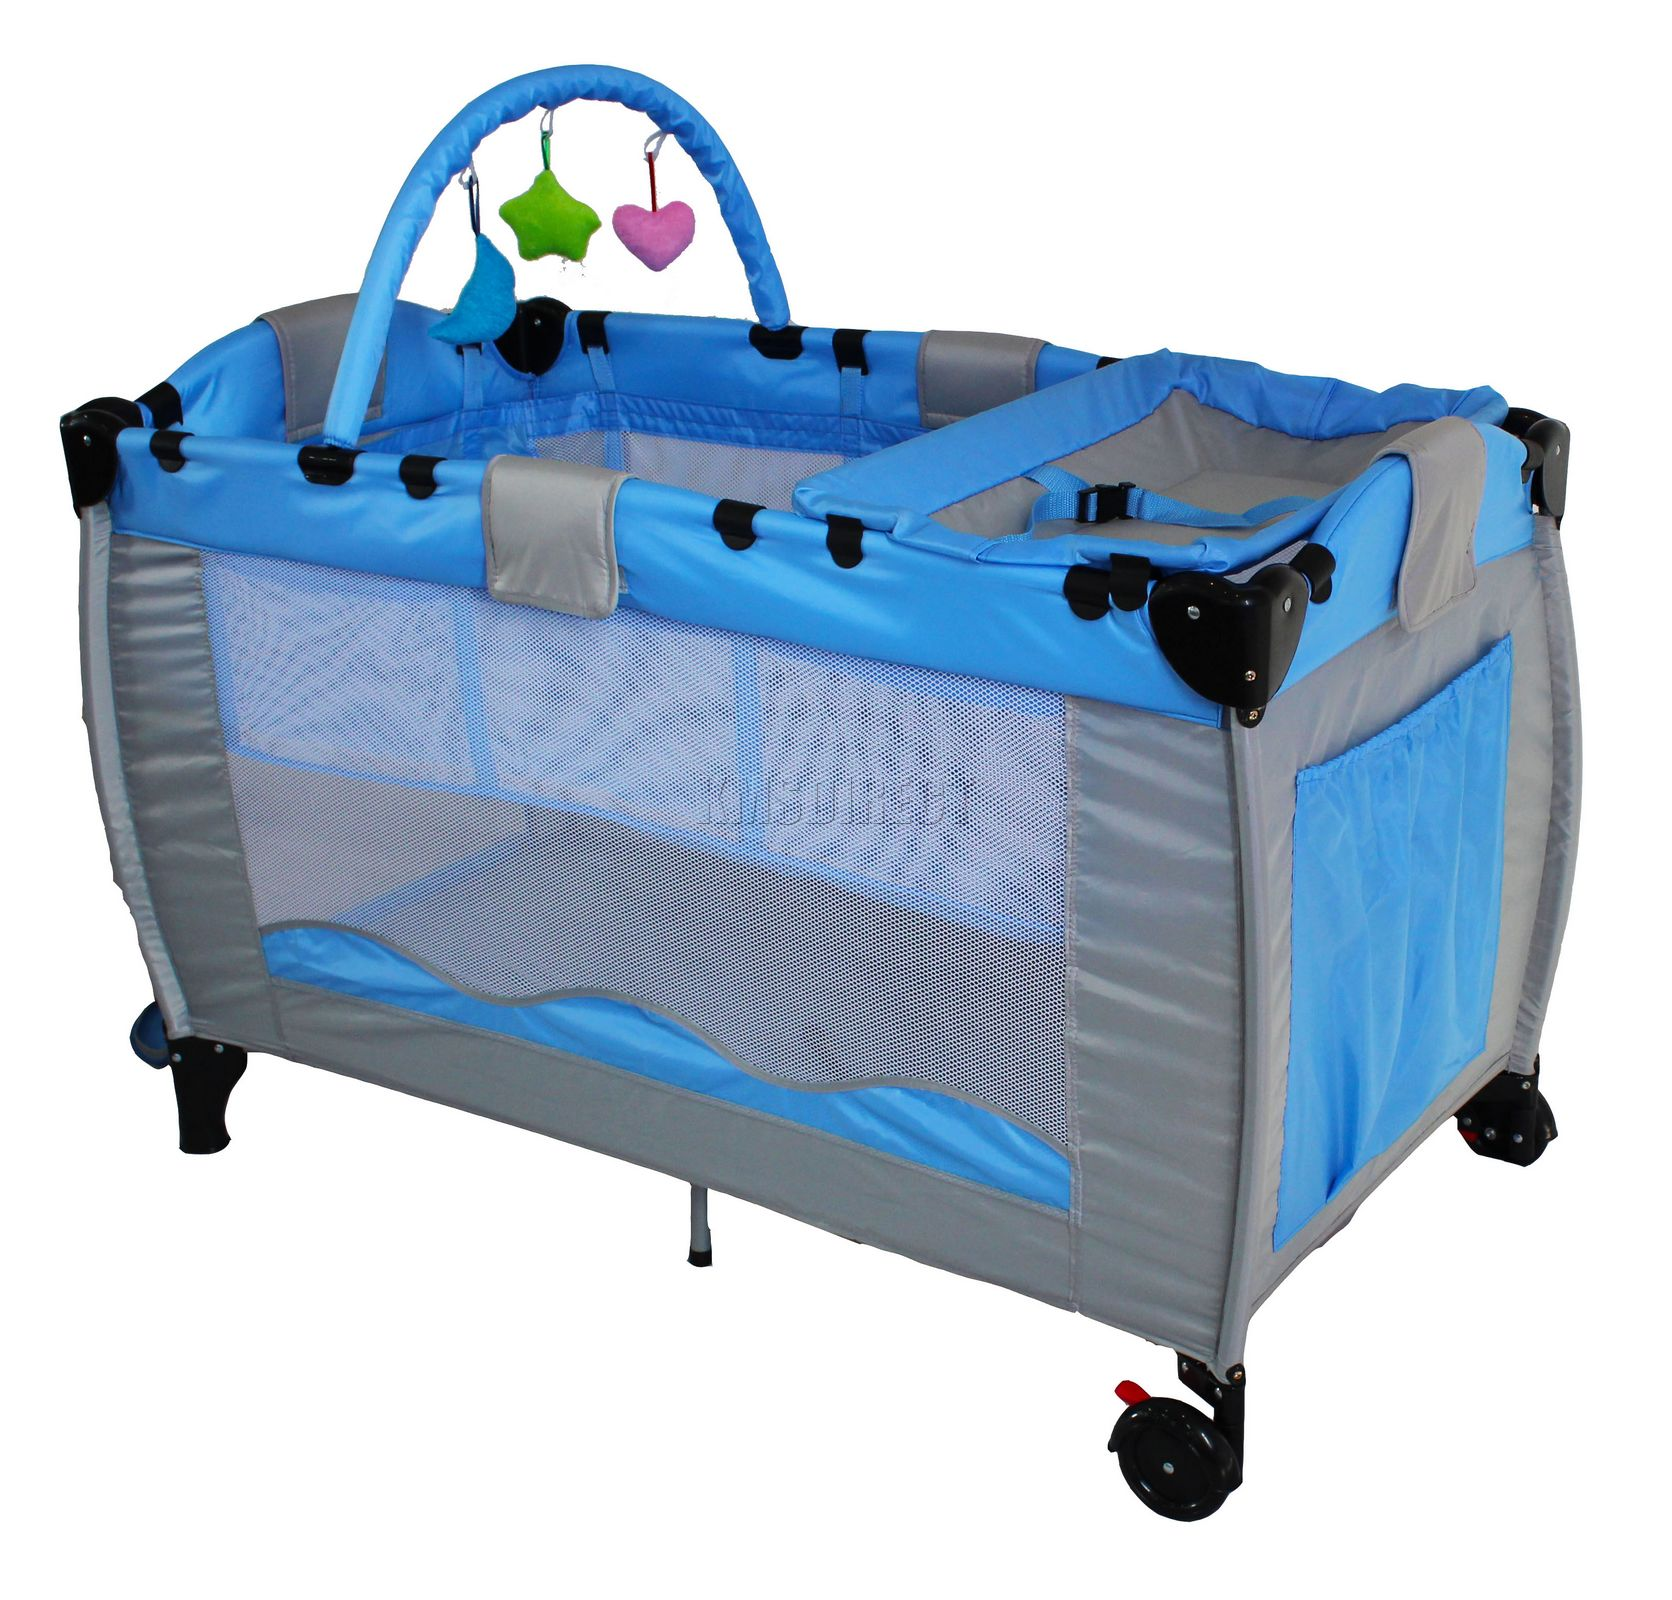 Blue Infant Baby Child Travel Bed Cot Bassinet Play Pen Playpen